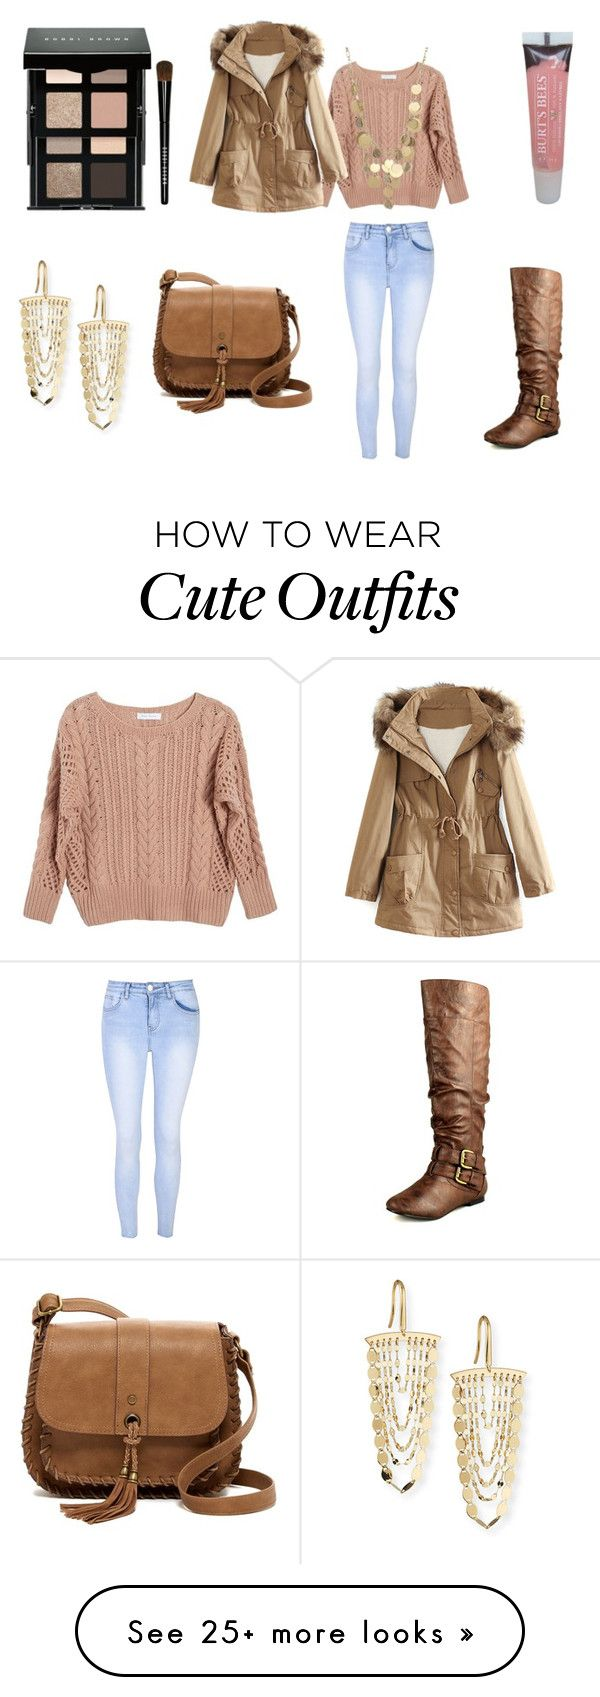 """Cute Weekend Outfit"" by holly32196 on Polyvore featuring Burt's Bees, Bobbi Brown Cosmetics, Glamorous, Ryan Roche, WithChic, Nature Breeze, T-shirt & Jeans, Lana and Kenneth Cole"